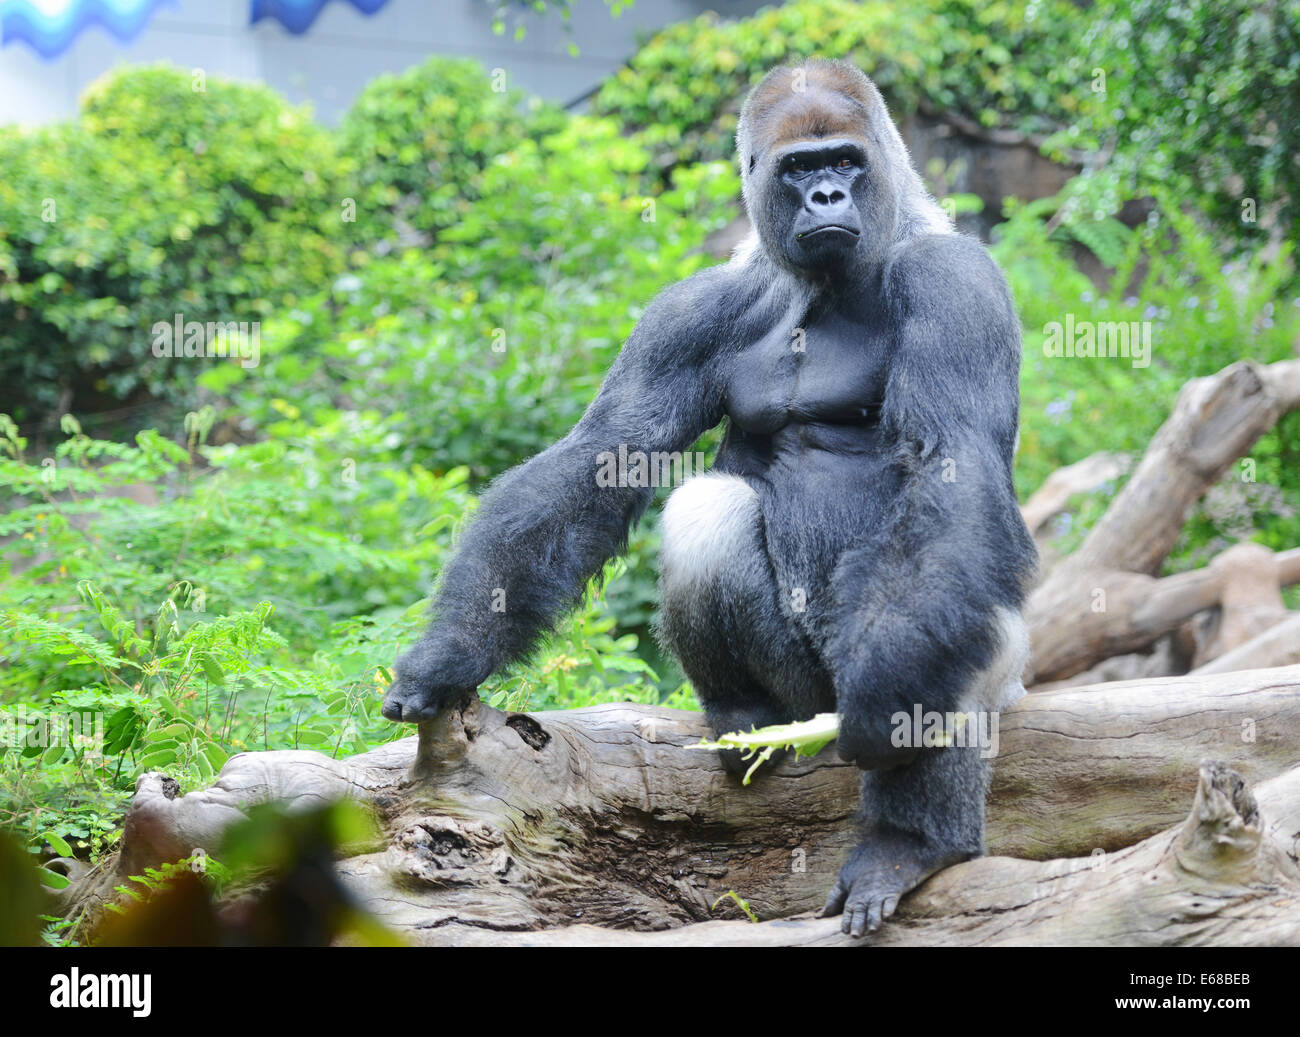 Name Of Animals In Hindi To English besides Public Locked In After Gorilla Escapes Enclosure At London Zoo 6191075 as well Earth Day 2012 Cartoon Animal Kingdom together with Tattoo animal tattoos instagood furthermore Orangutan. on animal image gorilla